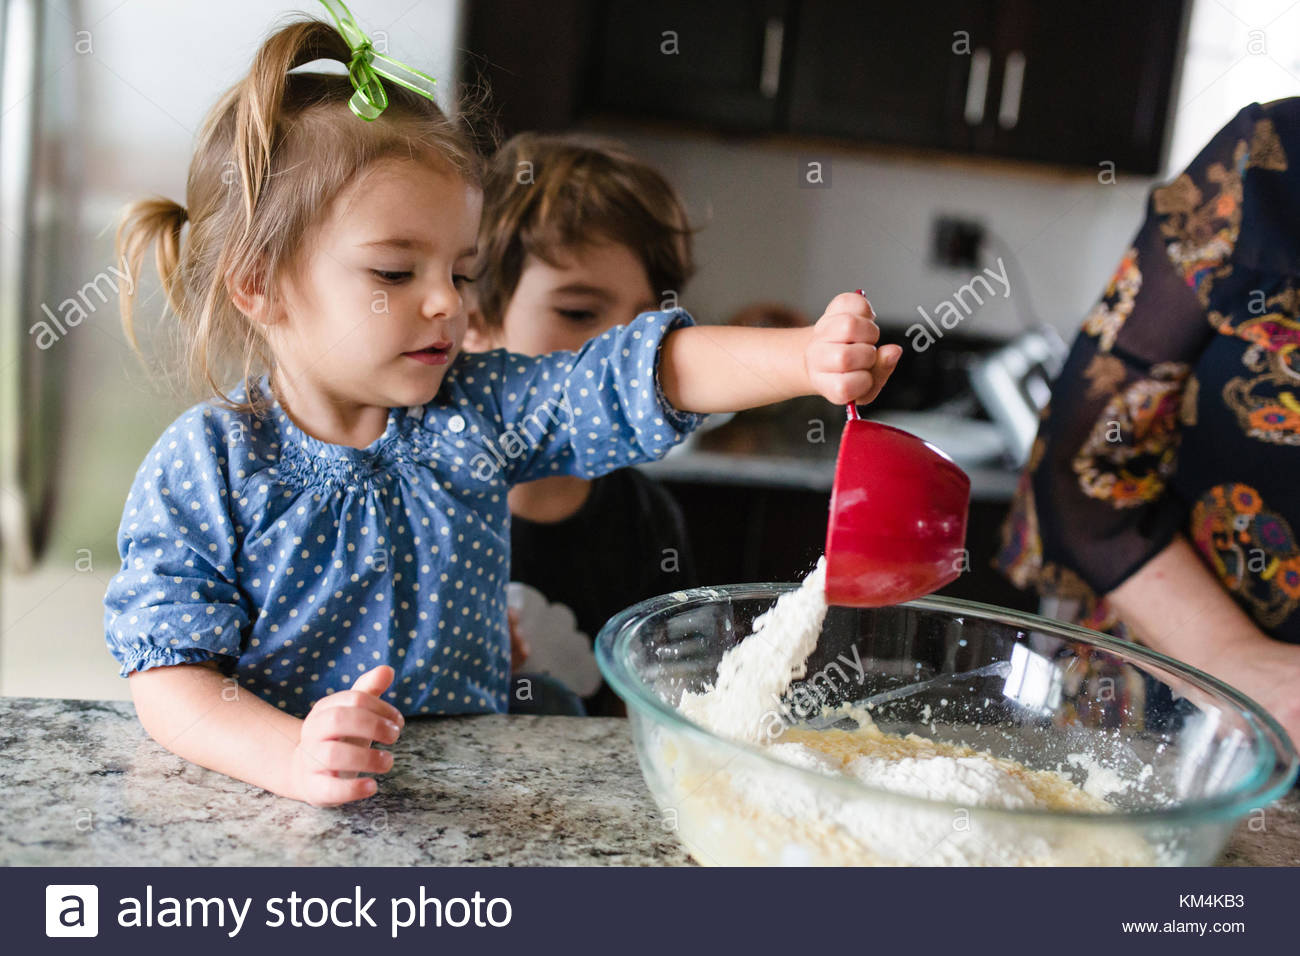 Young girl with green ribbon in her hair standing in a kitchen, pouring flour into glass mixing bowl, young boy - Stock Image